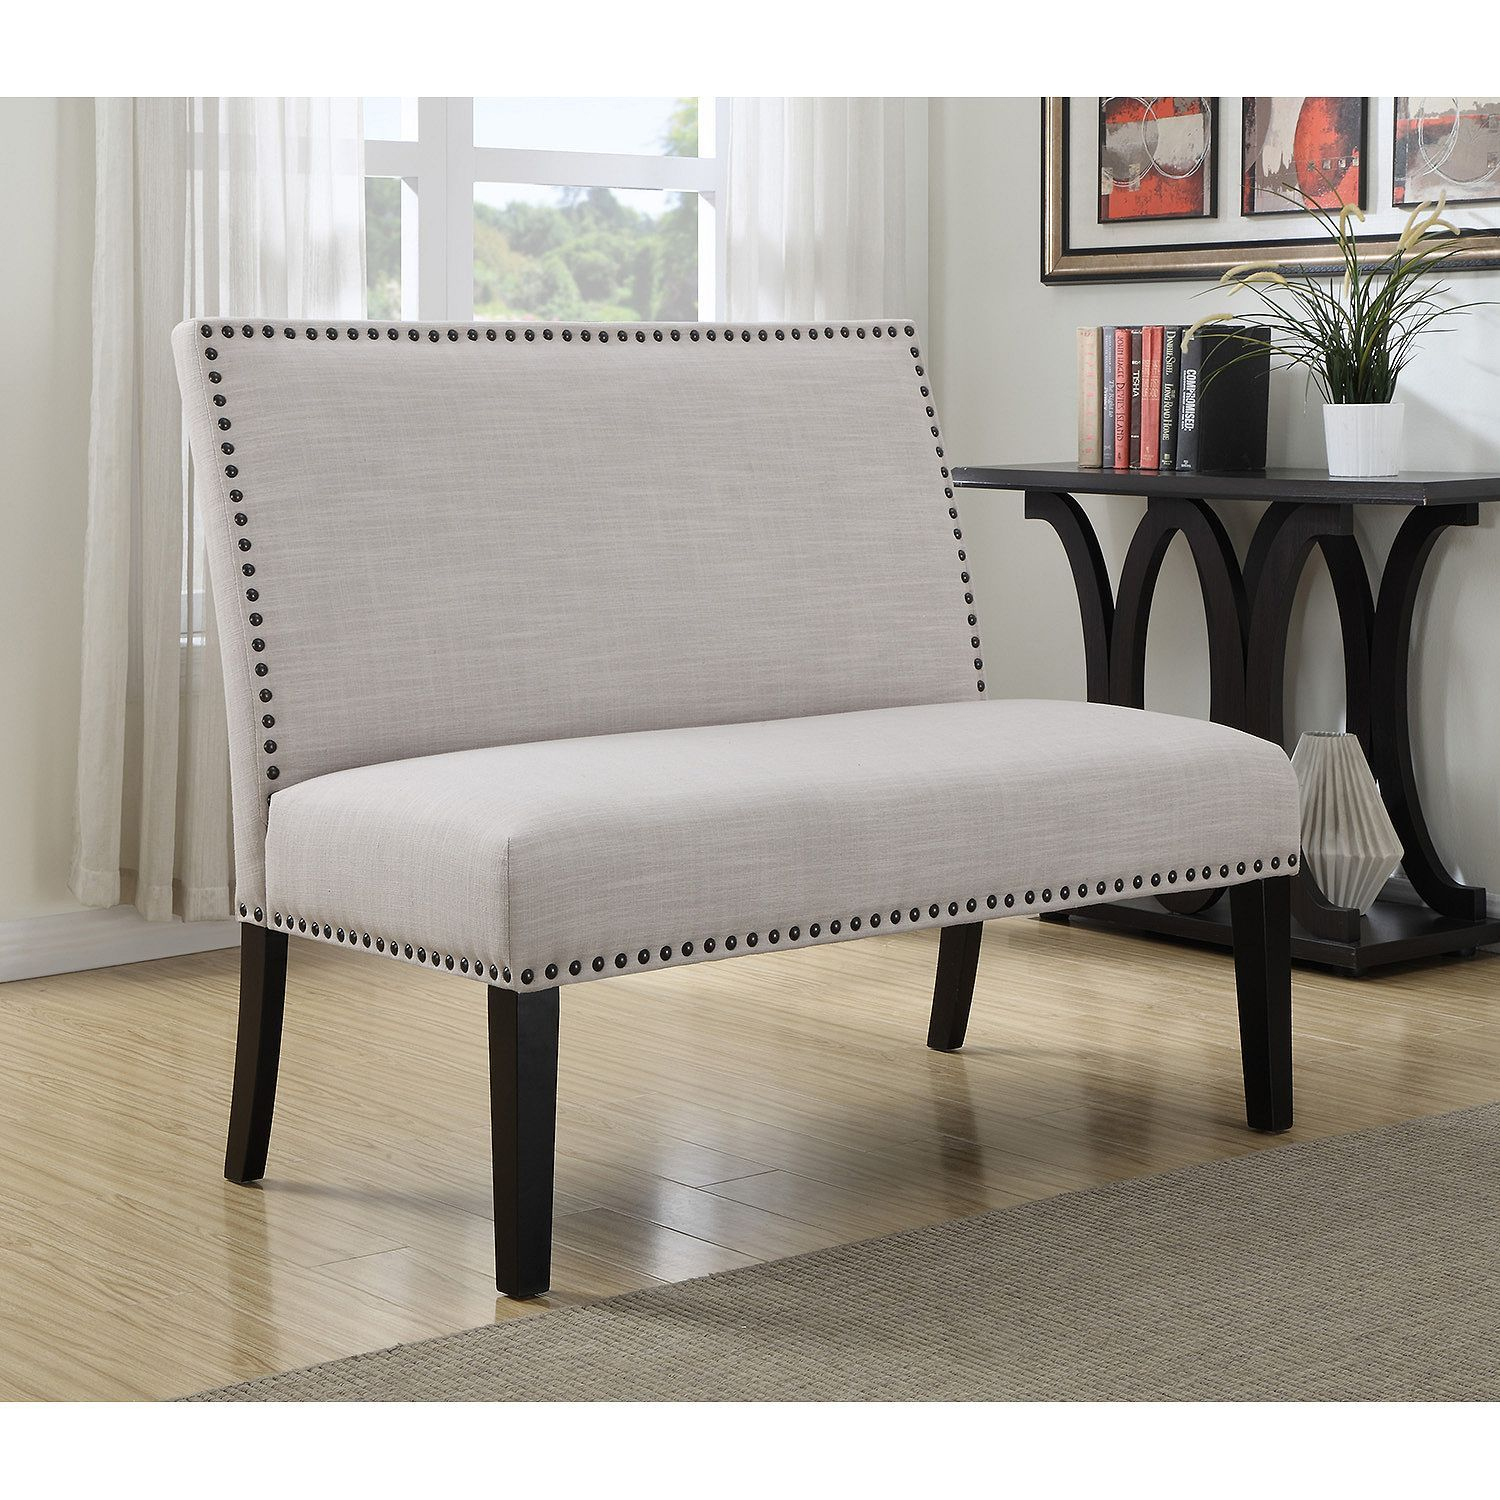 abigail settee bench assorted colors  sam's club